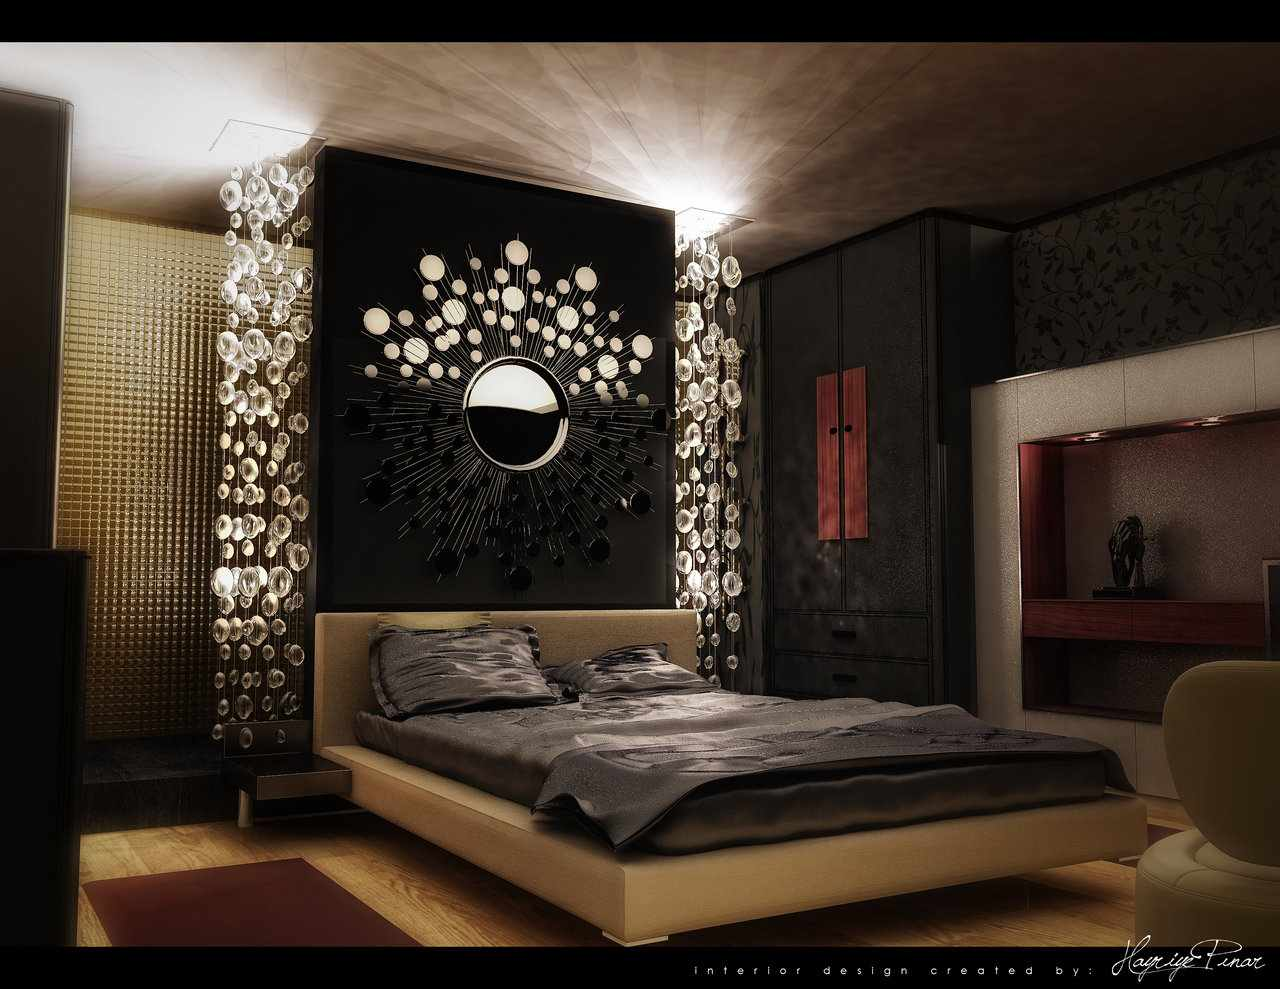 Ikea Bedroom Ideas Ikea Bedroom 2014 Ideas Room Design